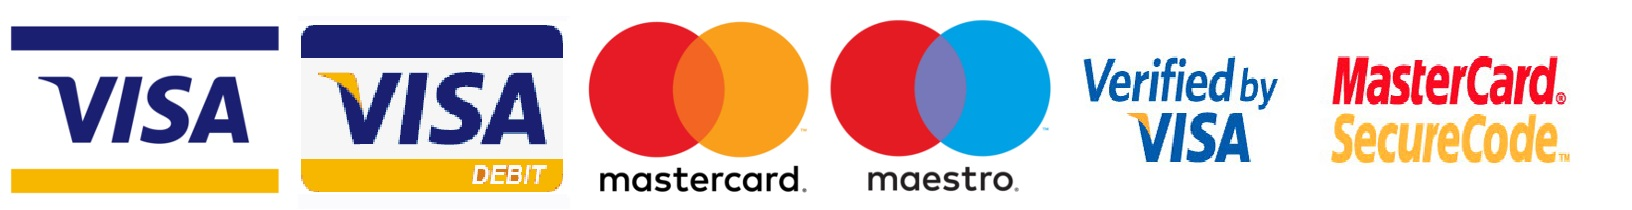 (Visa, Visa Debit, MasterCard, Maestro, Verified by Visa and MasterCard SecureCode)